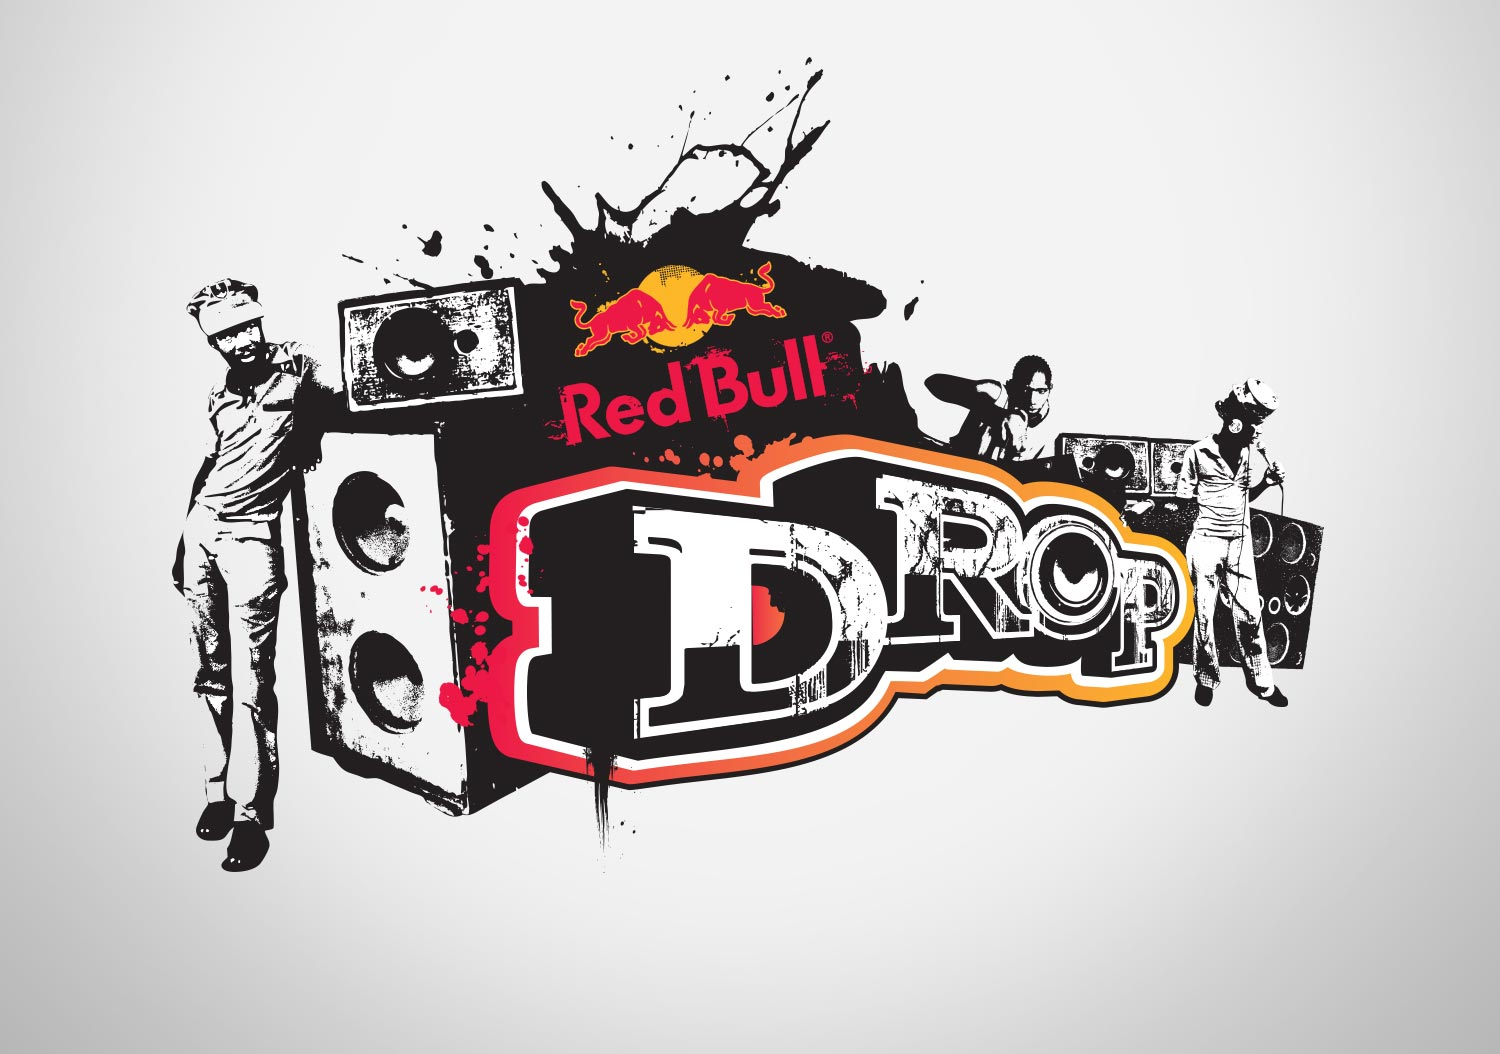 Red Bull | Drop | Event logo